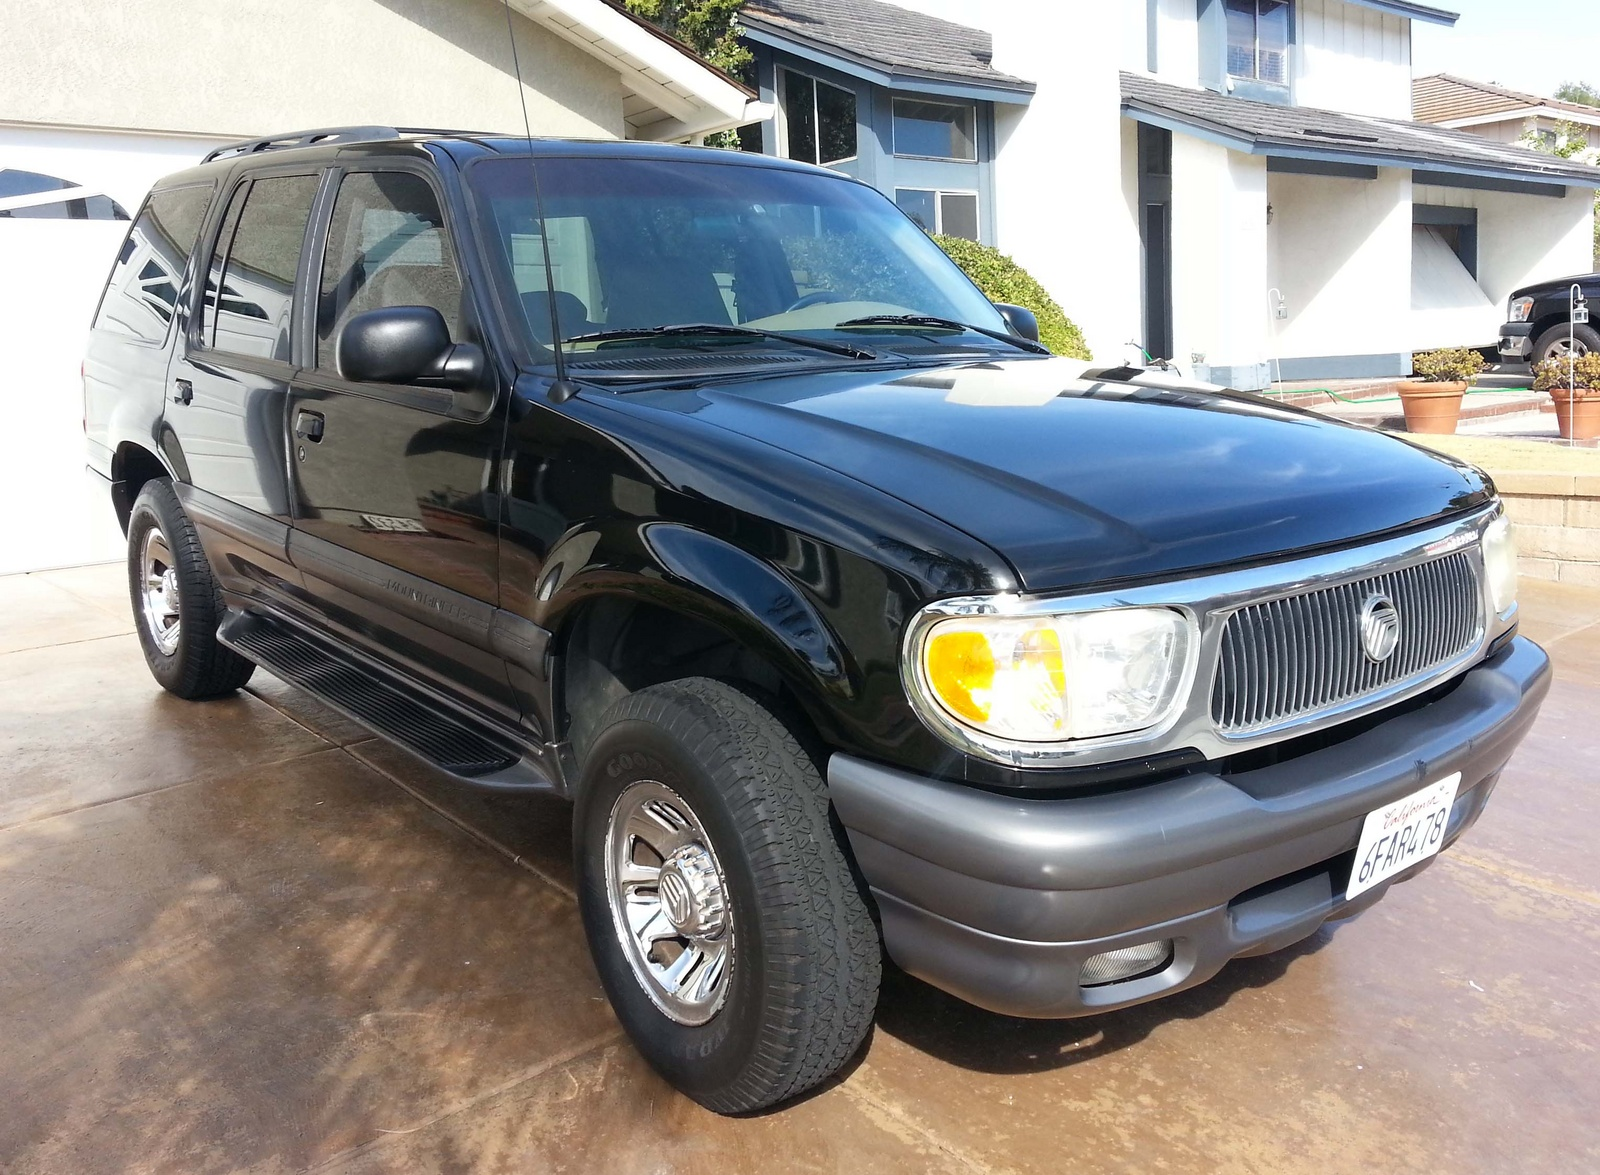 Picture of 1998 Mercury Mountaineer 4 Dr STD SUV